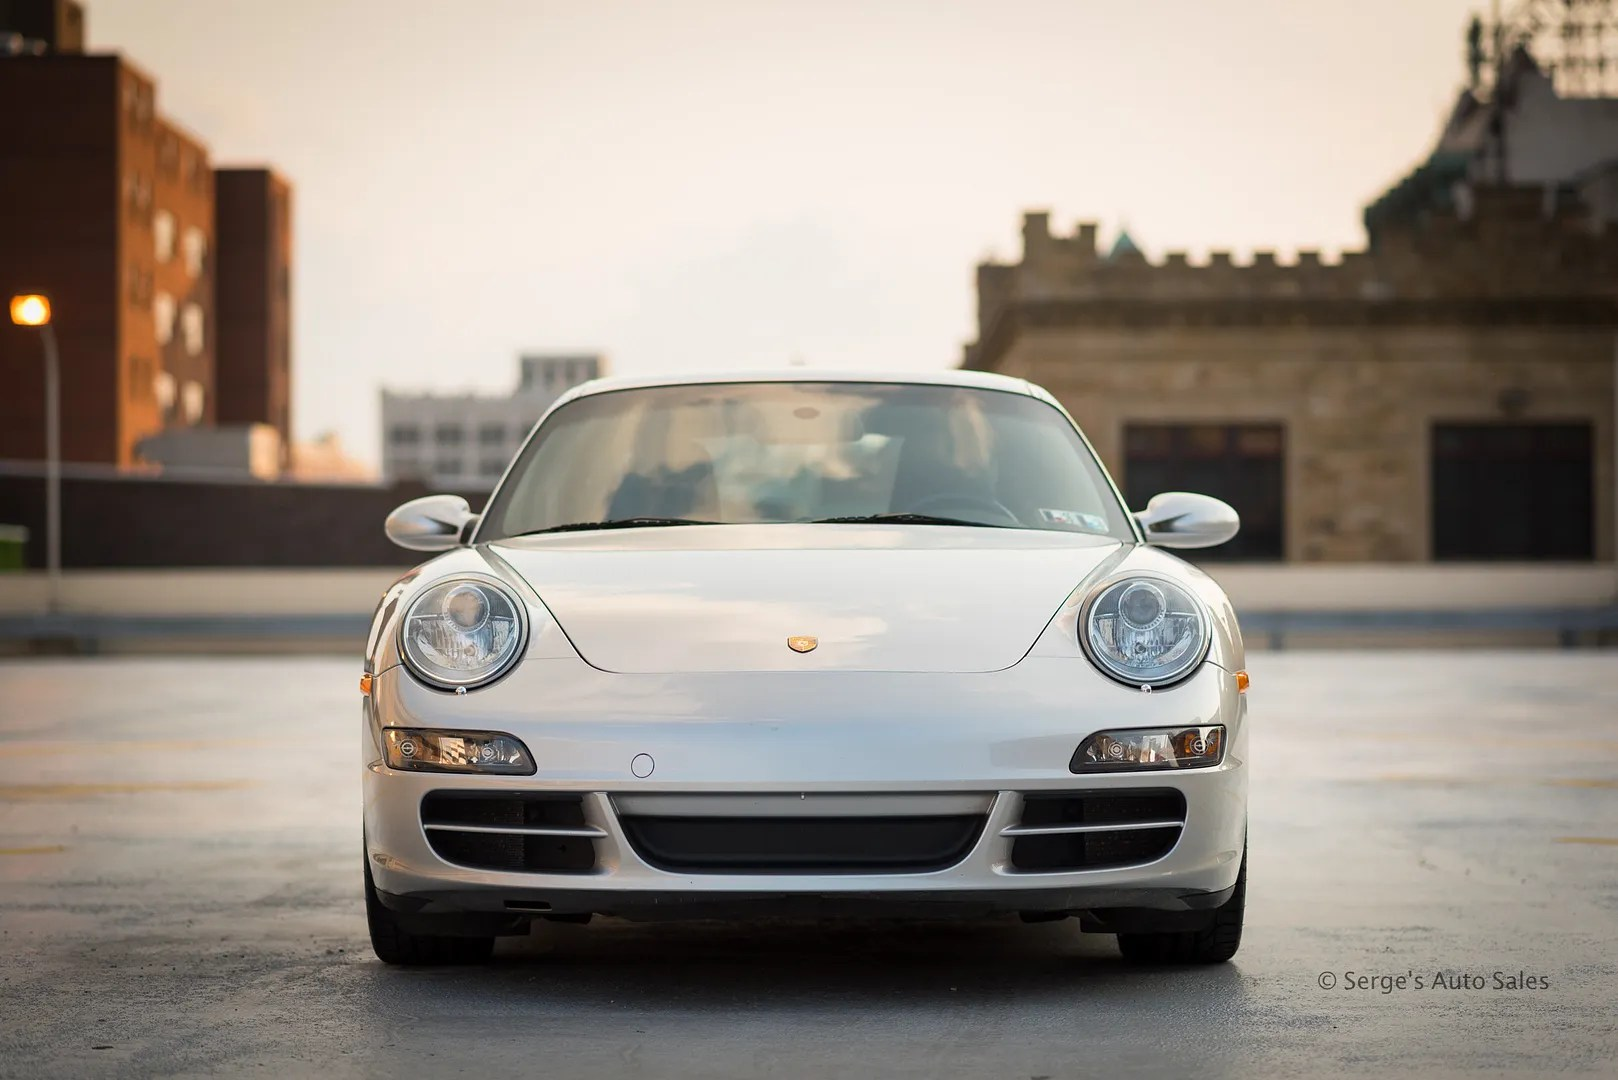 photo Serges-auto-sales-porsche-911-for-sale-scranton-pennsylvania-16_zpsjgwiyohx.jpg